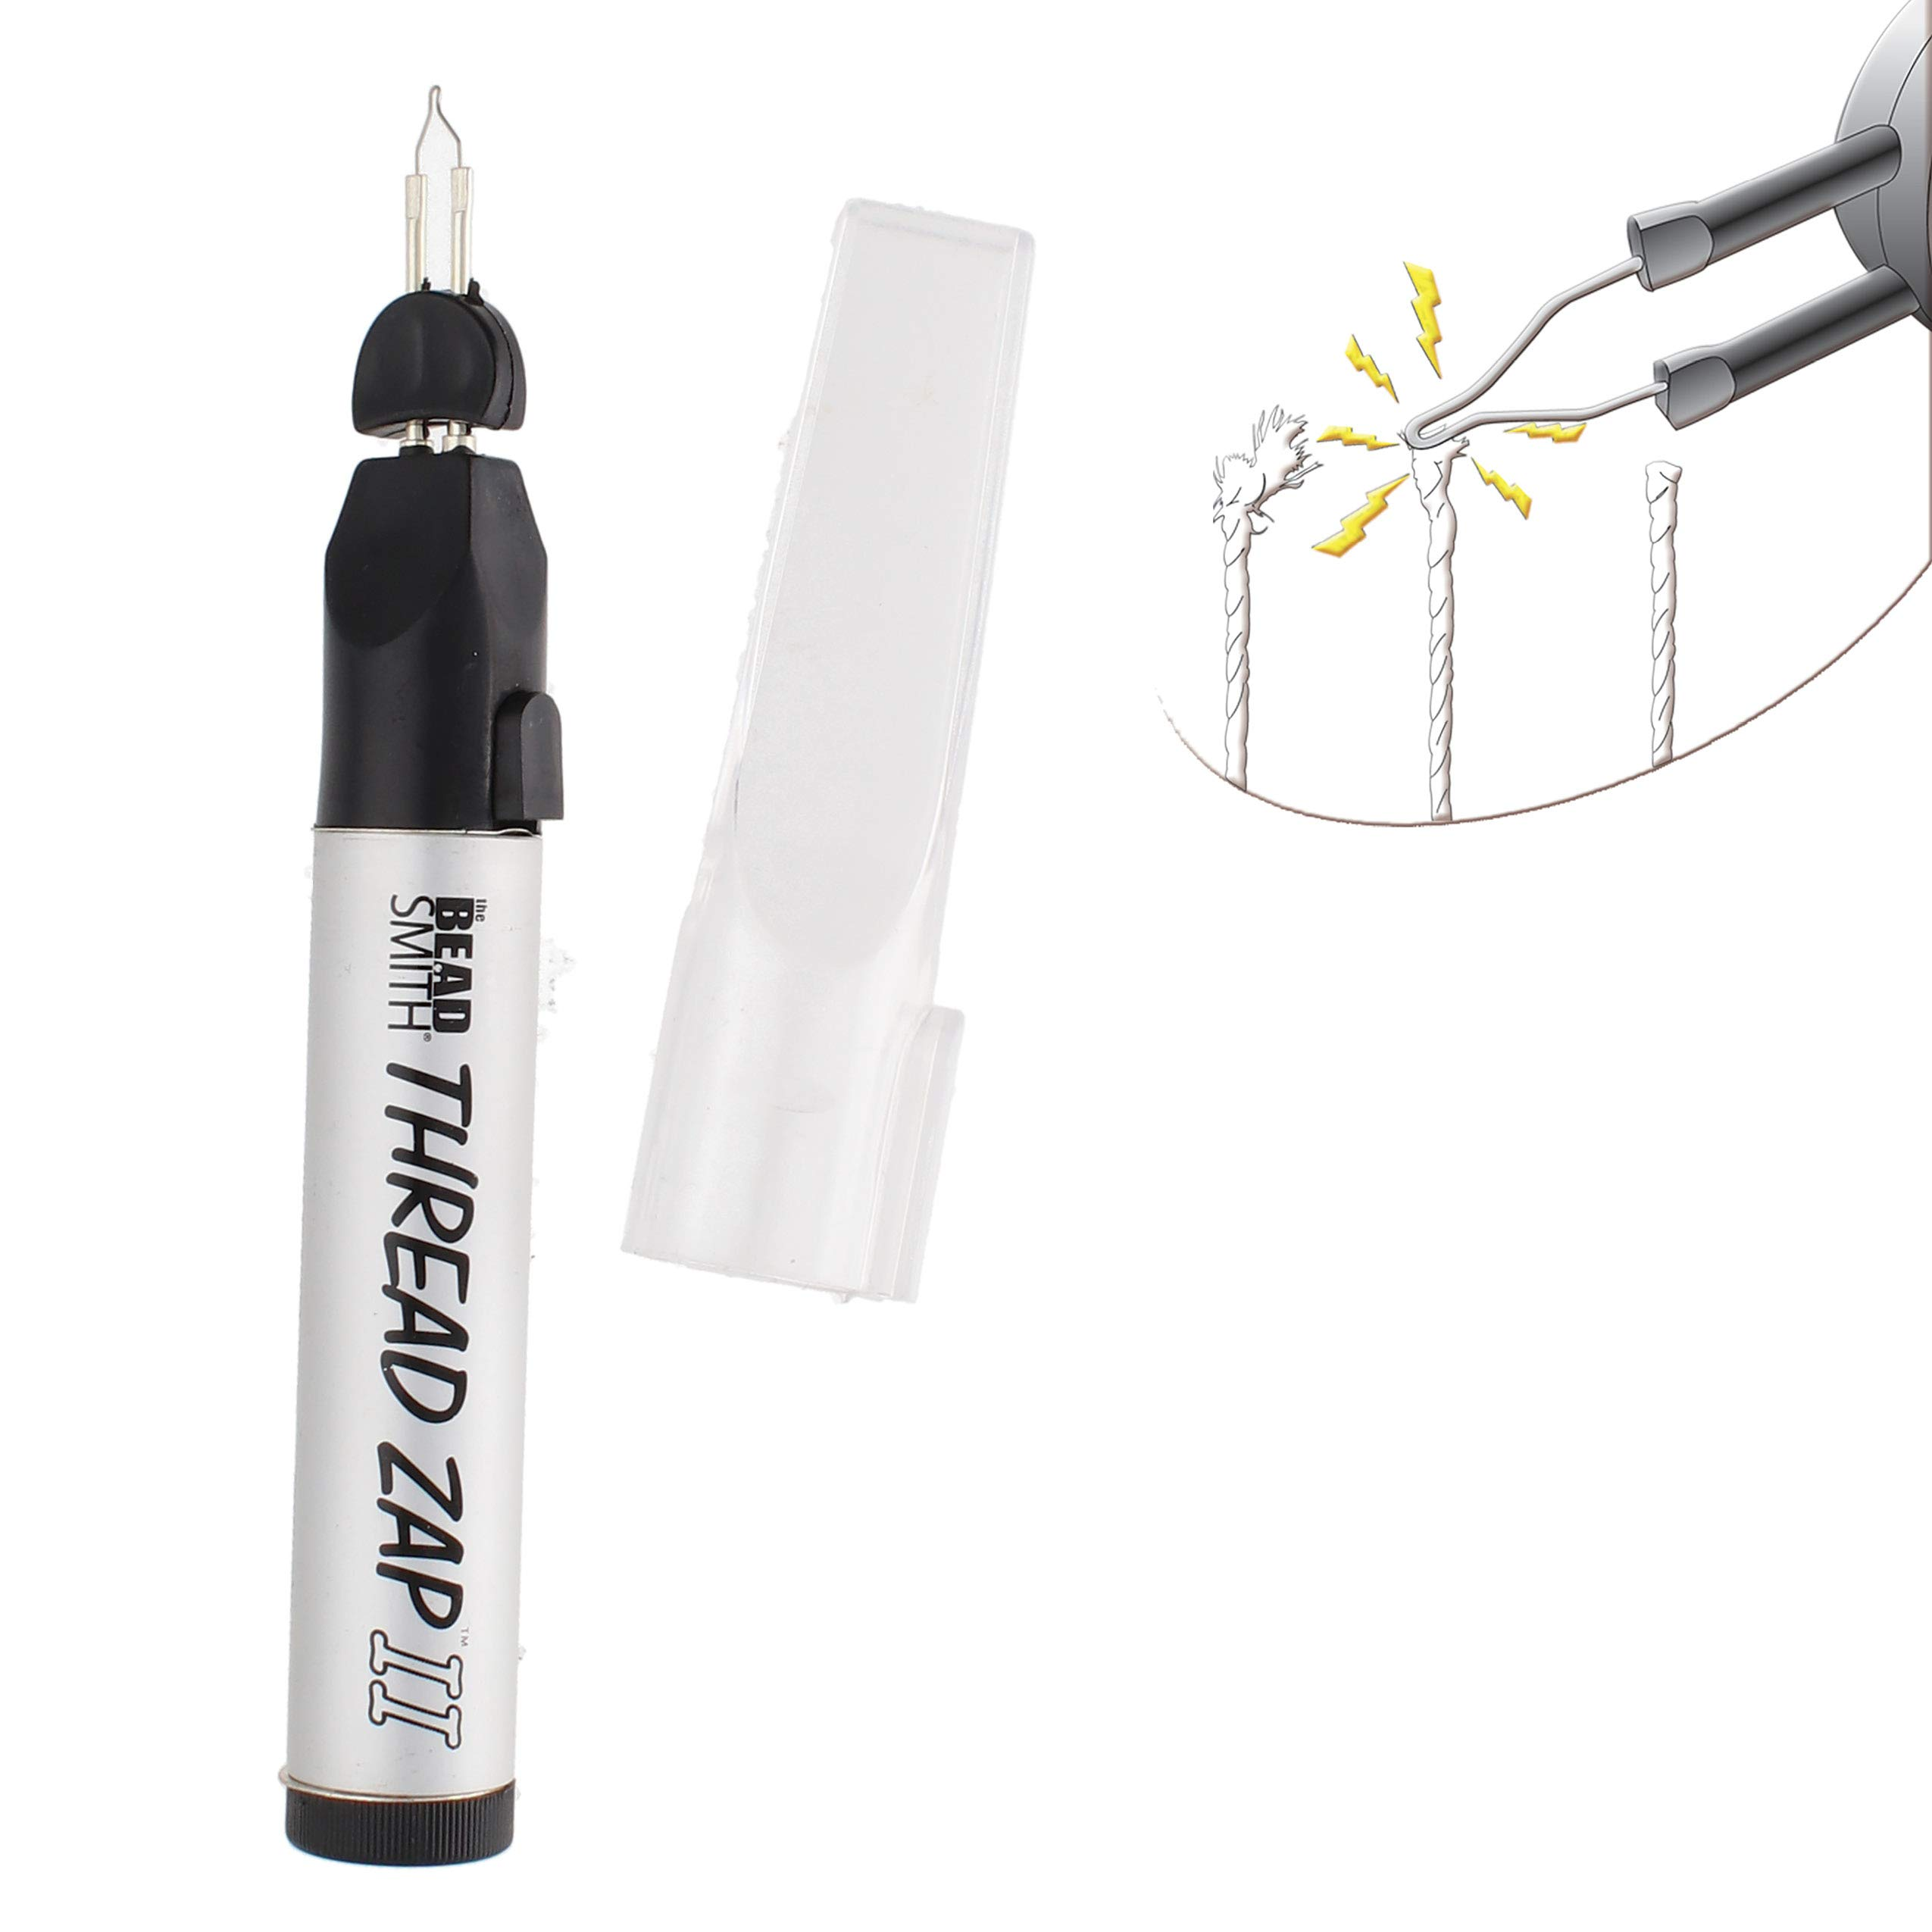 The Beadsmith Thread Zap II, Thread Burner, 5.25 inches, Push Button, Battery Operated (1xAA), Trim, Burn and Melt thread with one touch, Ideal for finishing bead weaving and stringing projects